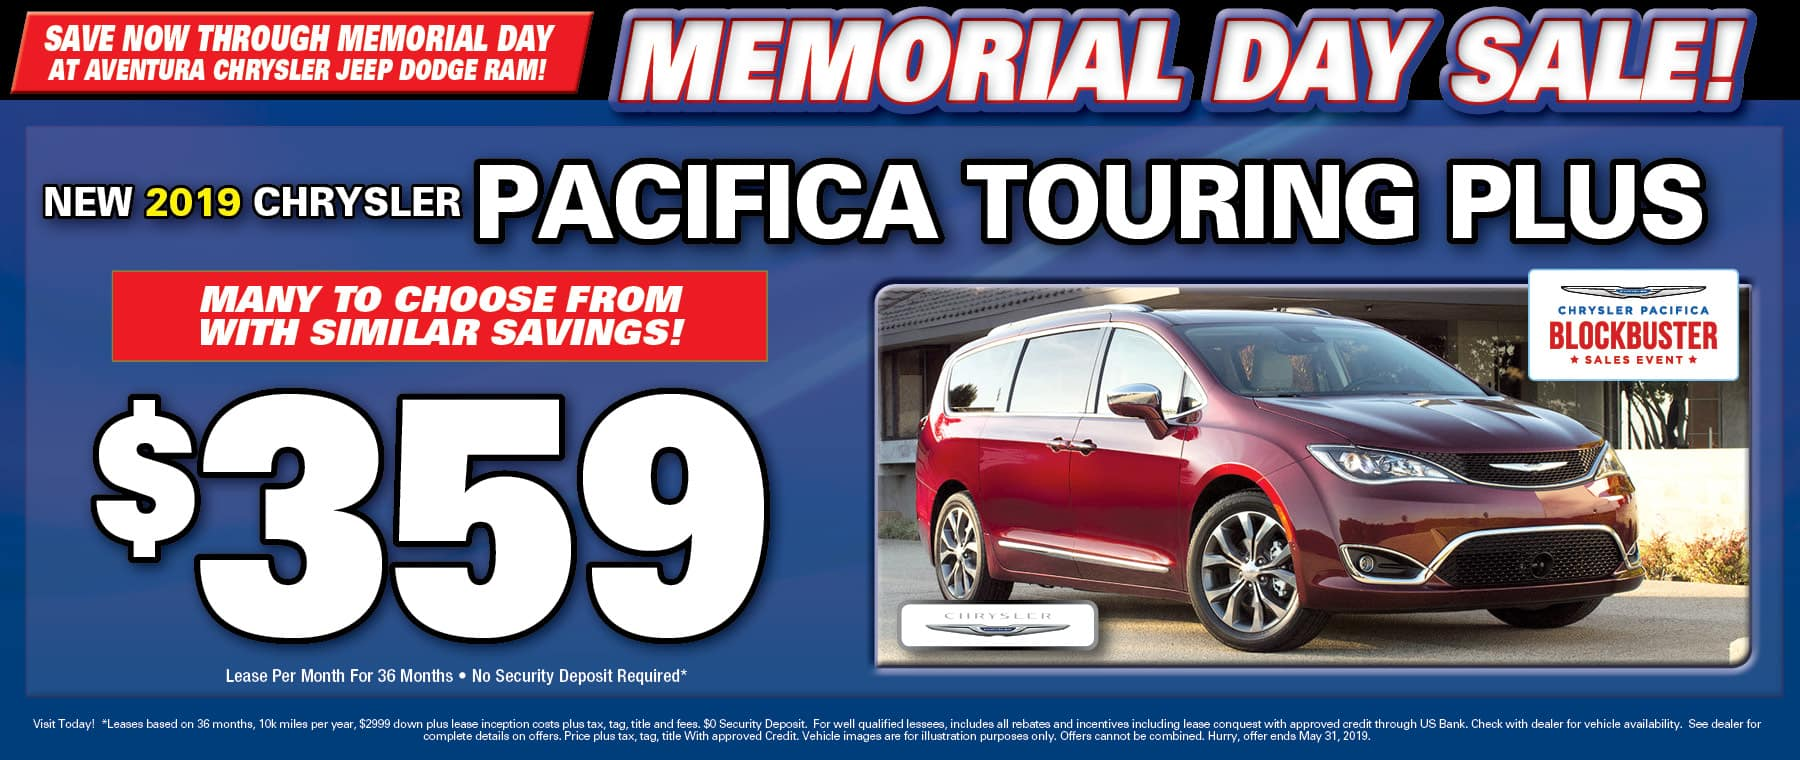 Chrysler Pacifica Touring Plus!